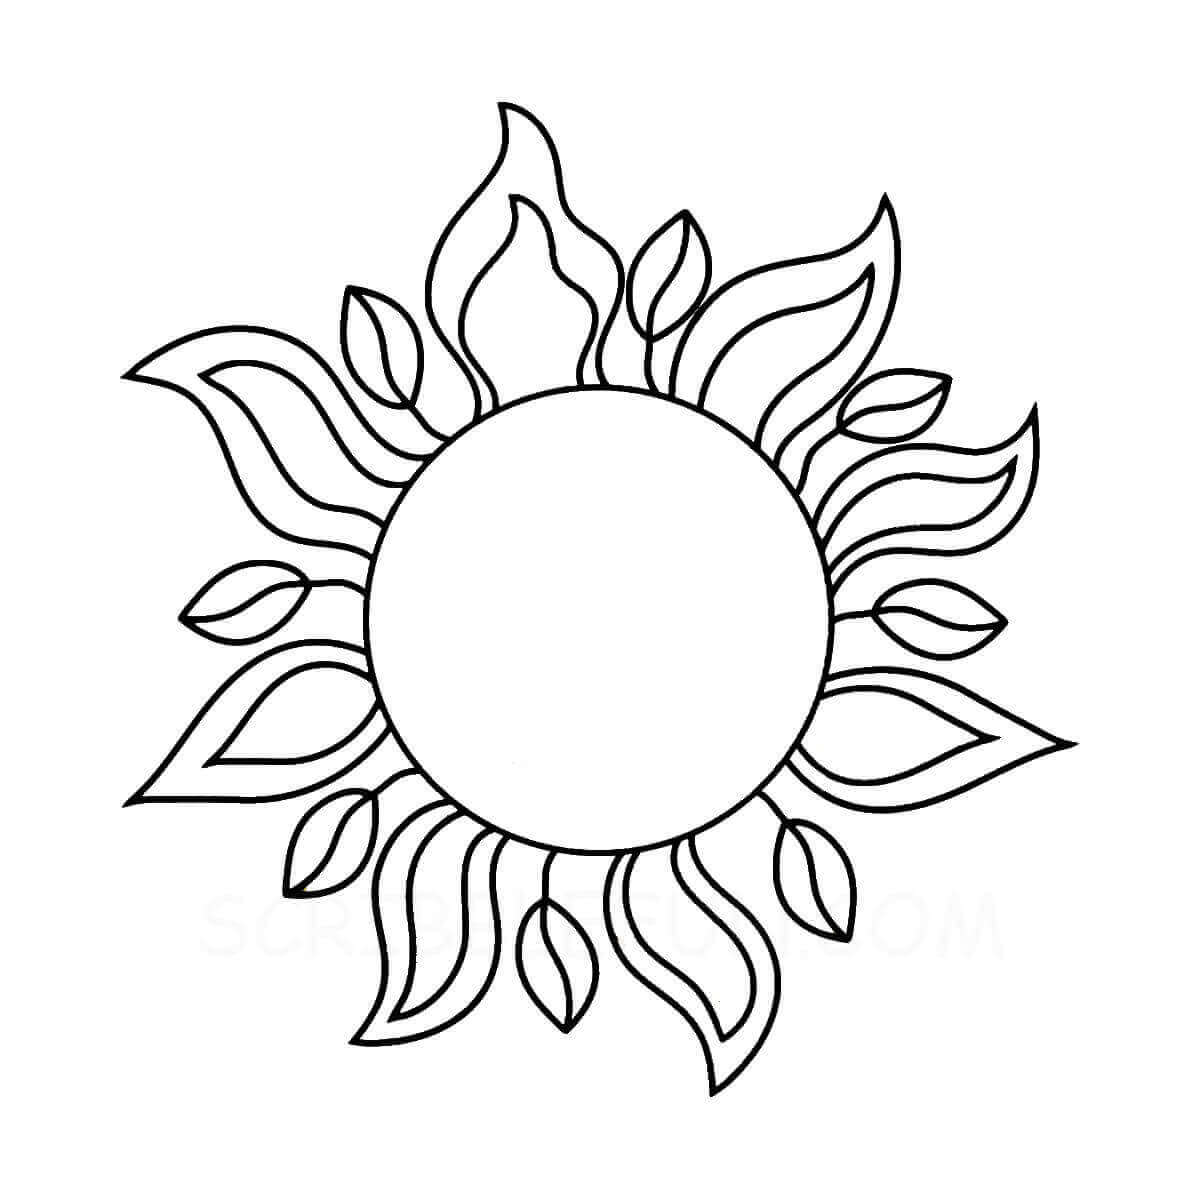 Sun shaped as a flower coloring page